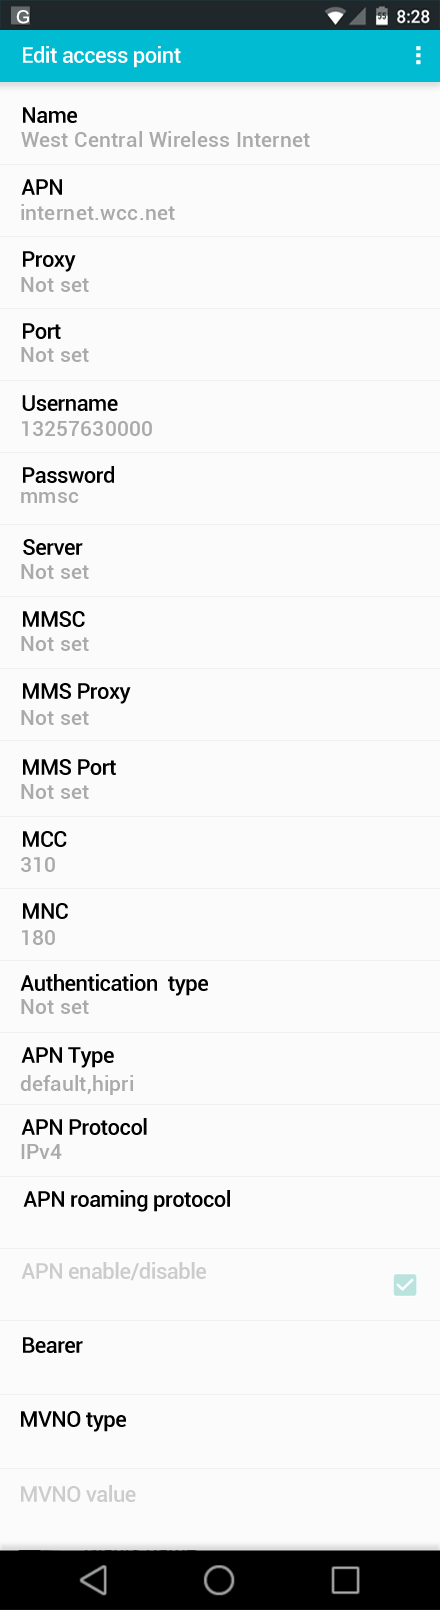 West Central Wireless Internet APN settings for Android screenshot